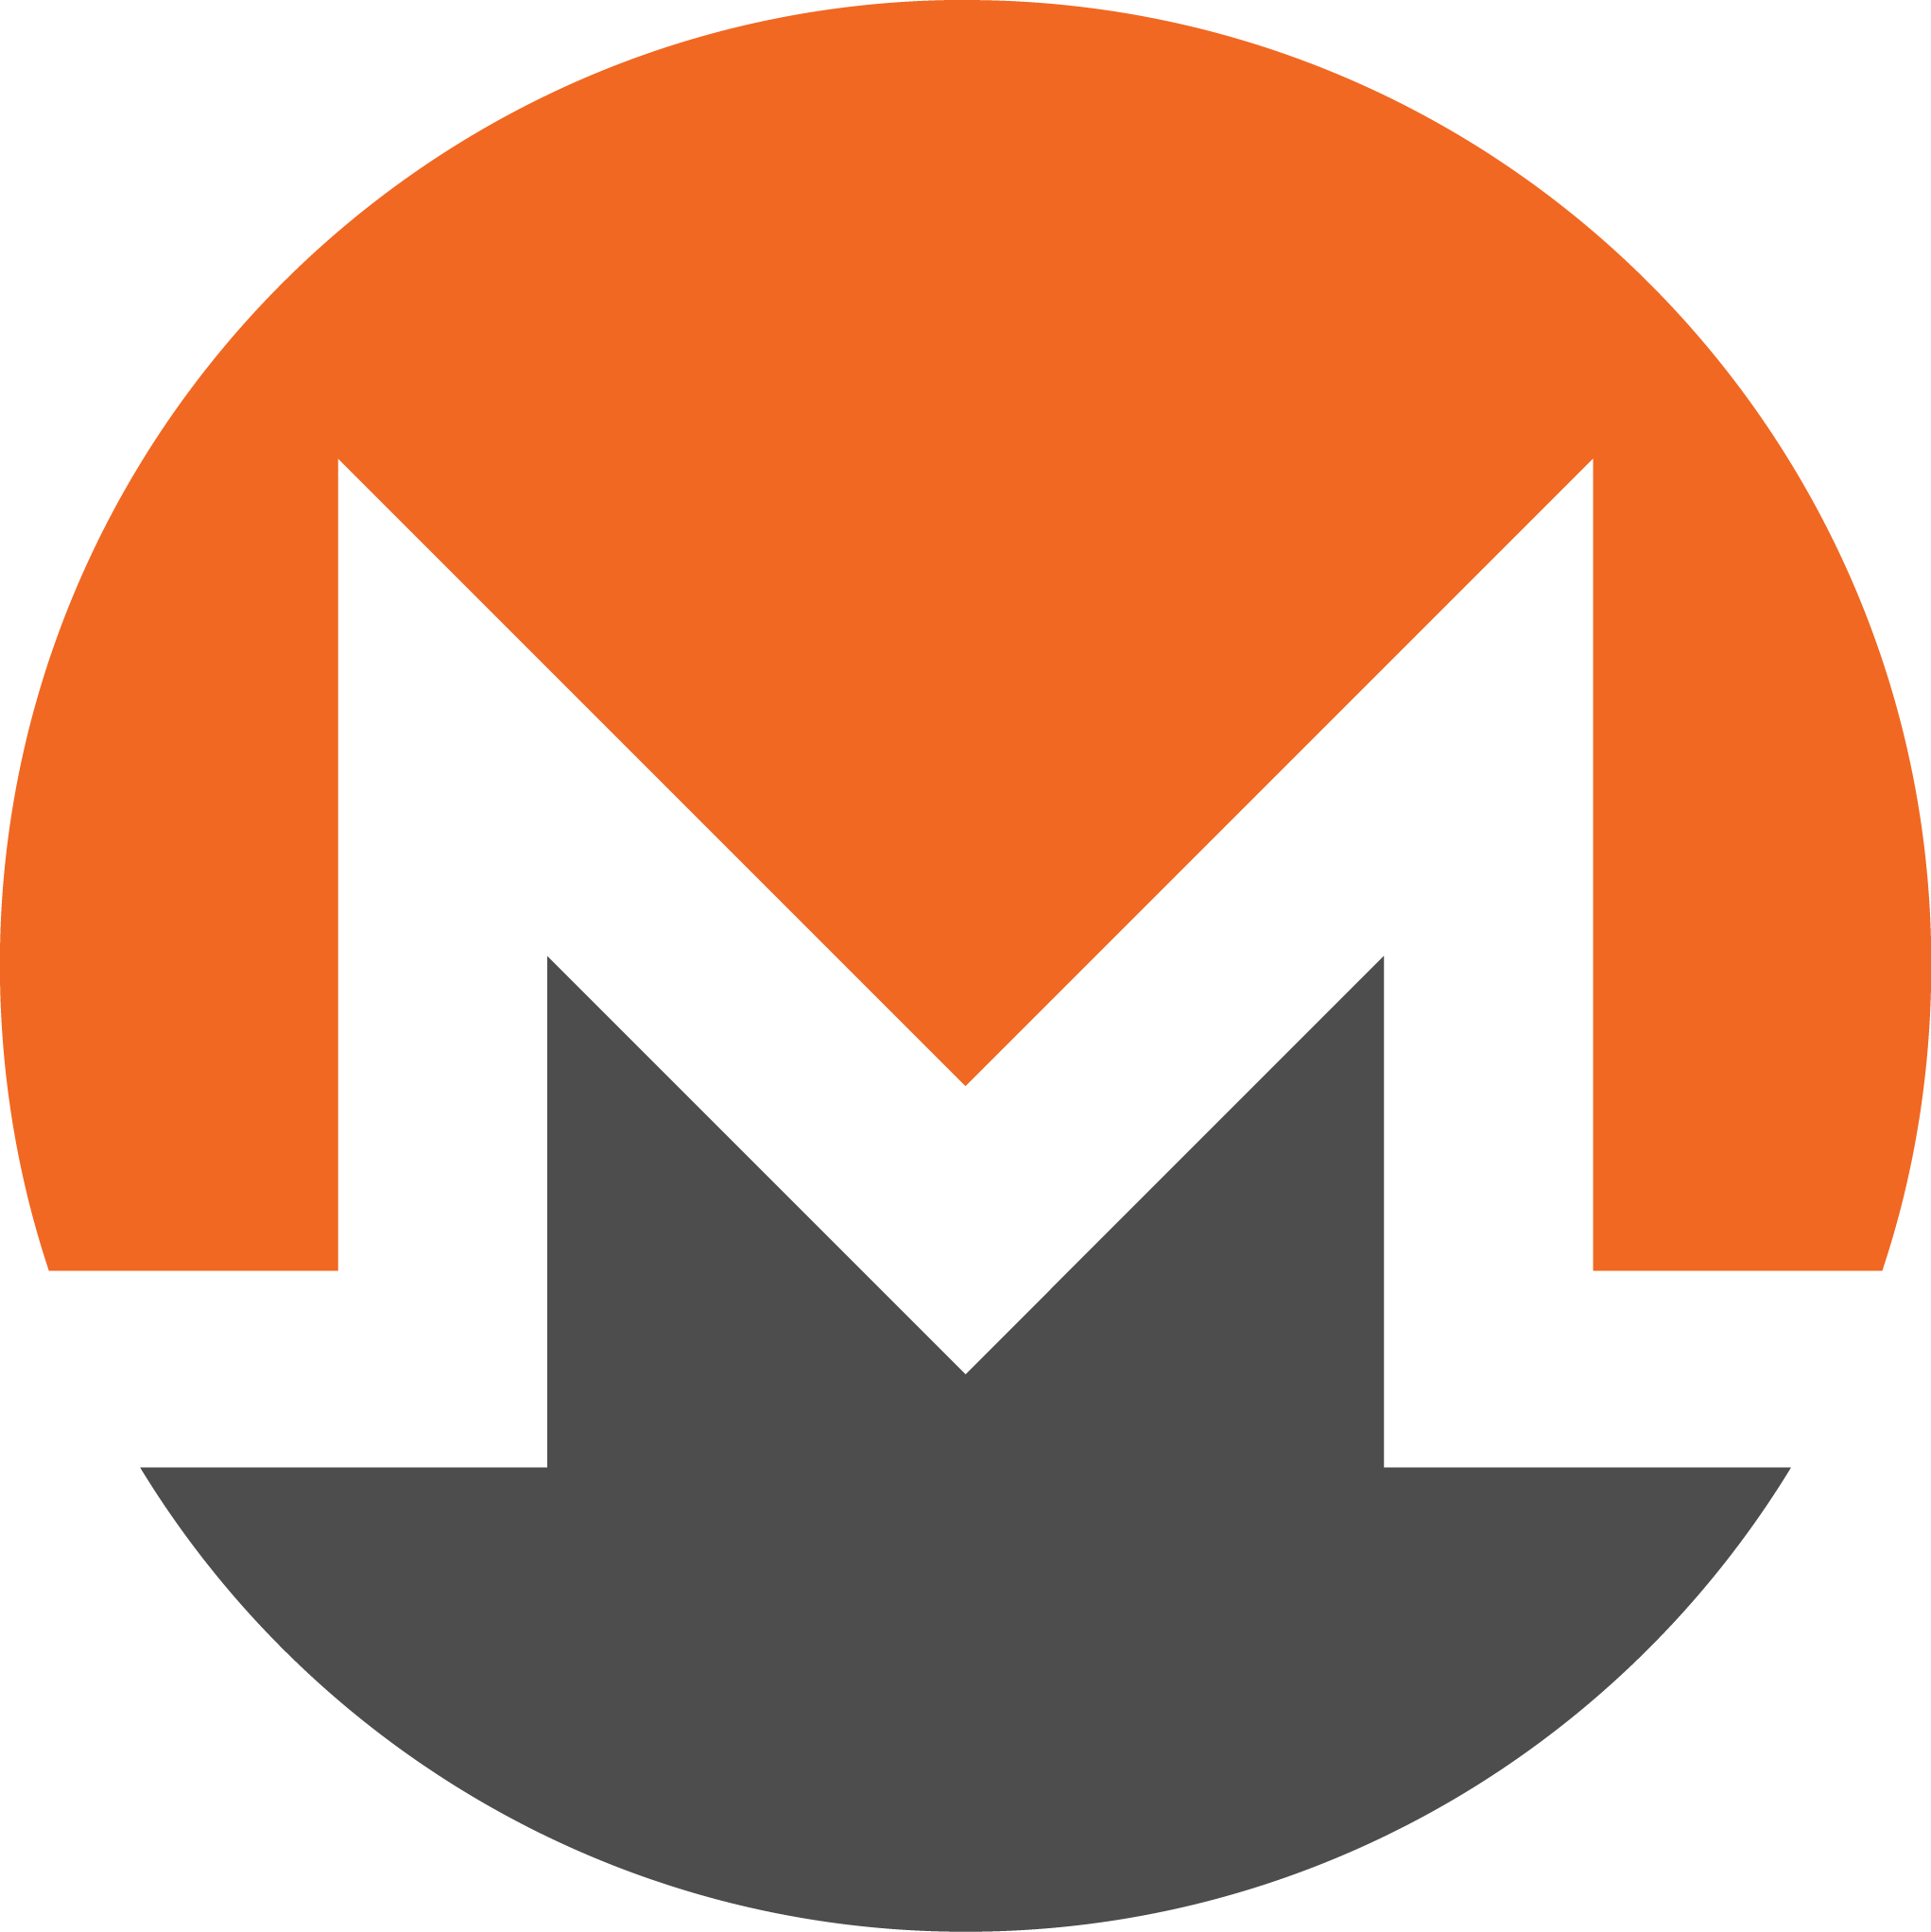 Monero Logo What Is Bitcoin Mining Cryptocurrency Bitcoin